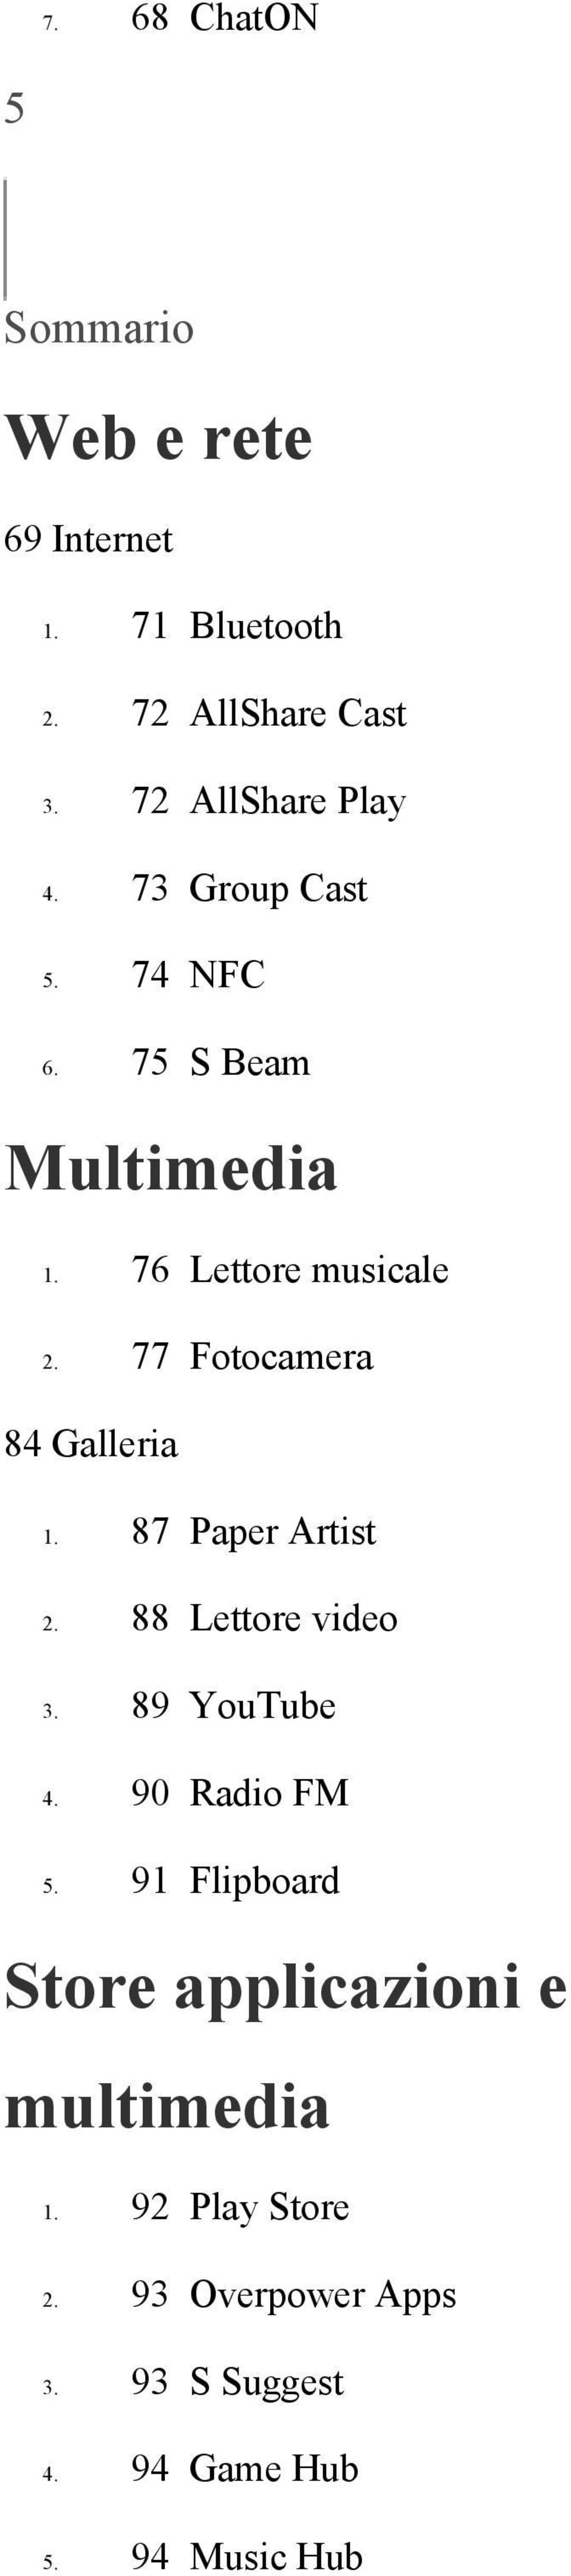 77 Fotocamera 84 Galleria 1. 87 Paper Artist 2. 88 Lettore video 3. 89 YouTube 4. 90 Radio FM 5.